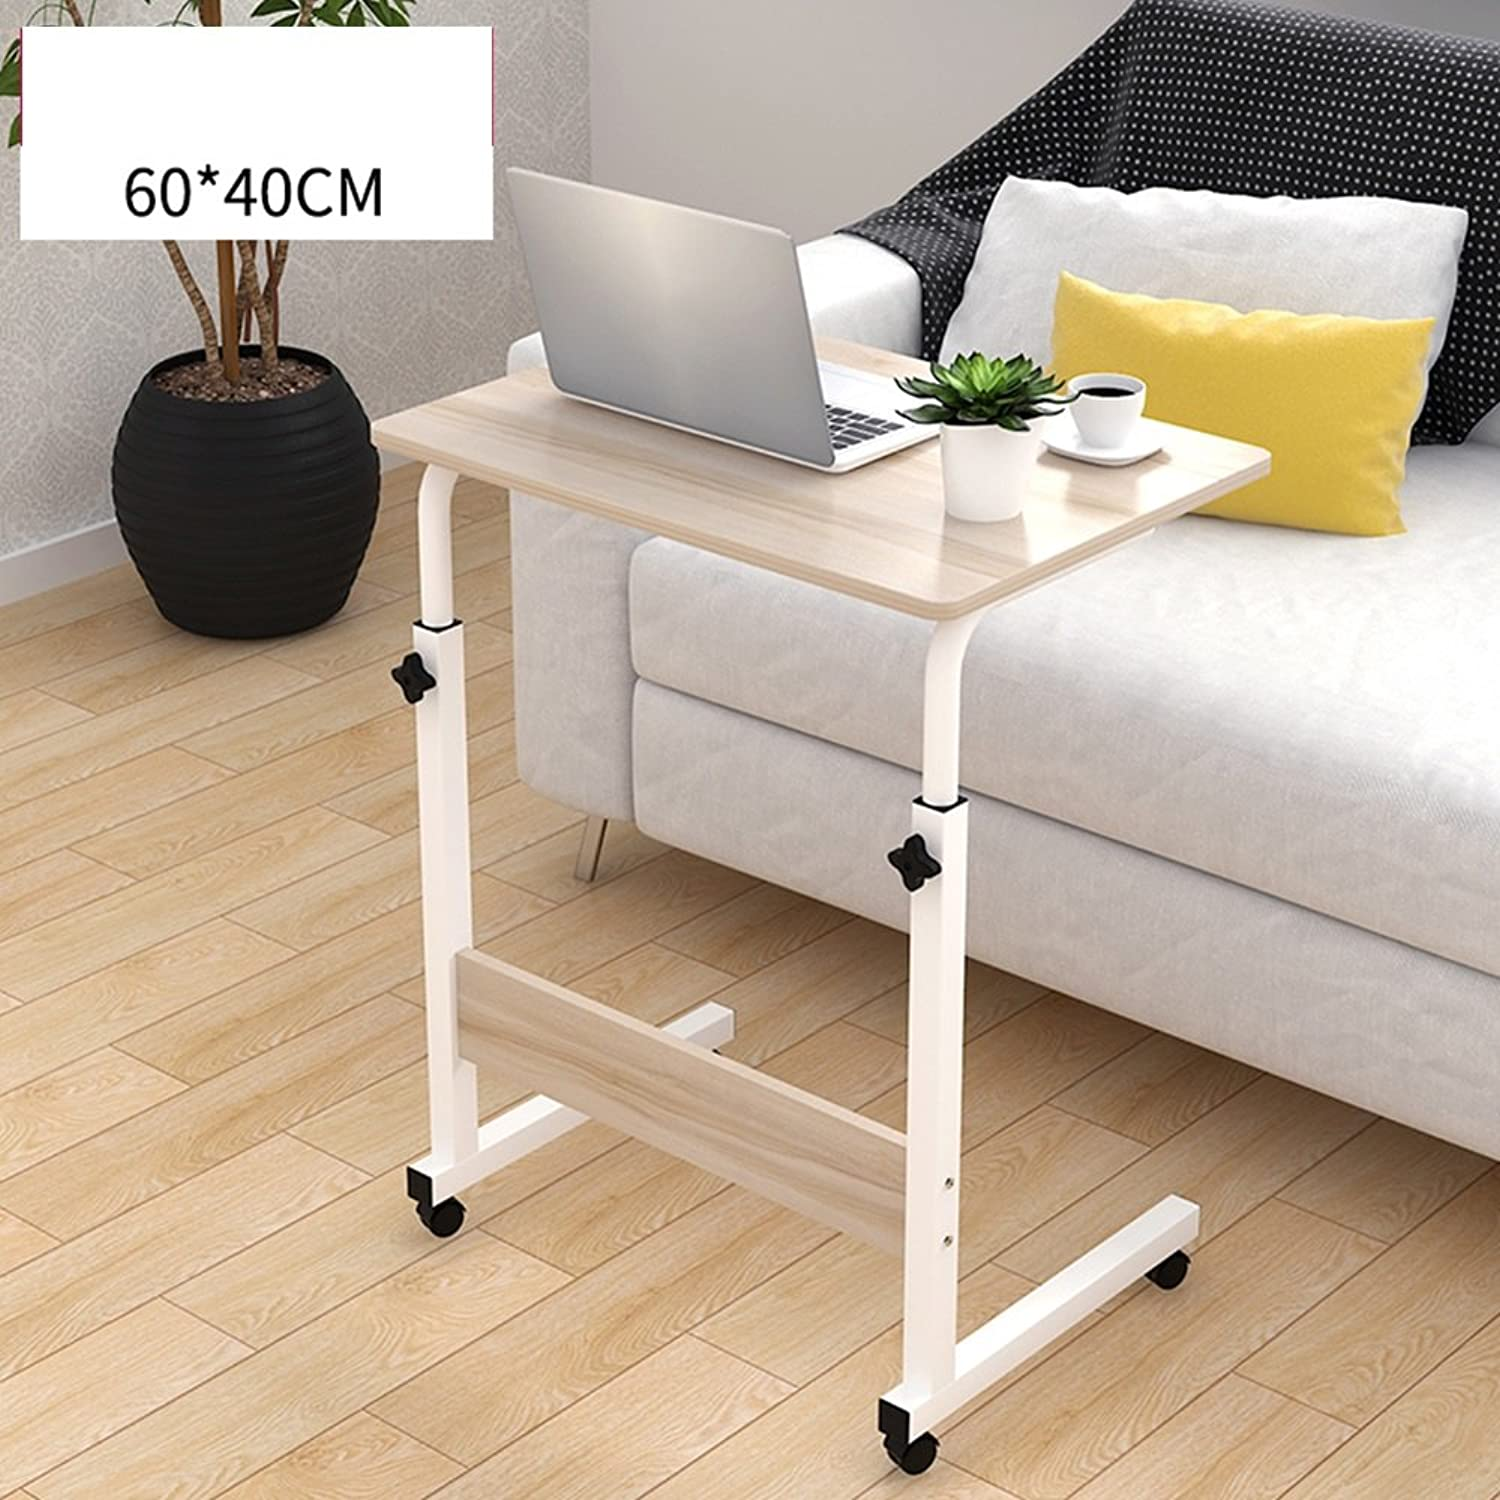 ZHIRONG Adjustable Overbed   Chair Table Movable Bedside Table Height-Adjustable Laptop Table Lazy Computer Stands Multi-function Table 604072-94cm , 804072-94cm ( color   D , Size   6040cm )